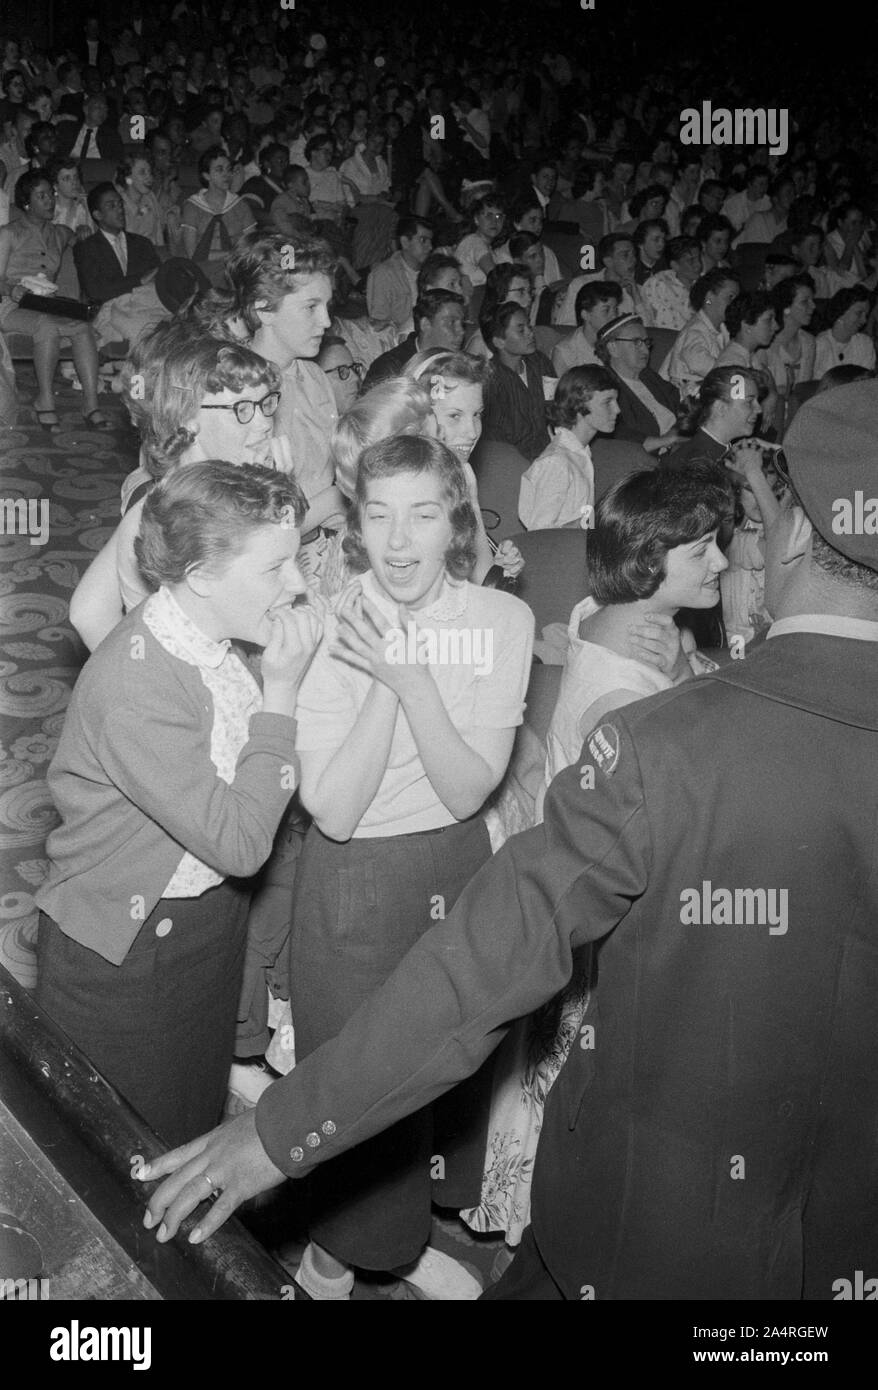 Elvis Presley fans reacting to his performance at the Fox Theater, Detroit, Michigan, May 25, 1956. Stock Photo